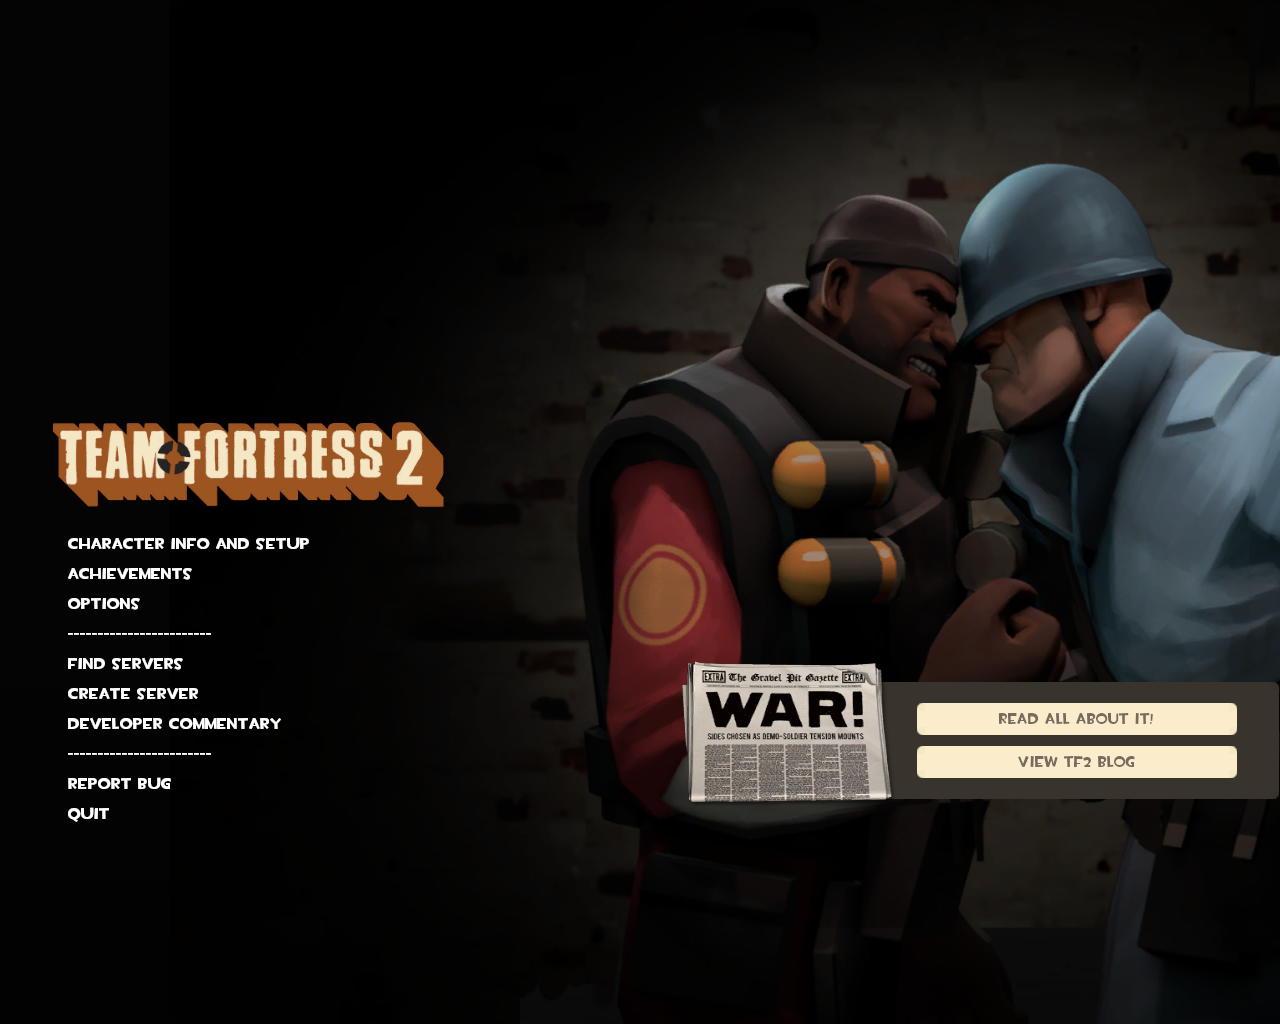 Team Fortress 2 Windows The Soldier vs. Demoman war update included a new background.